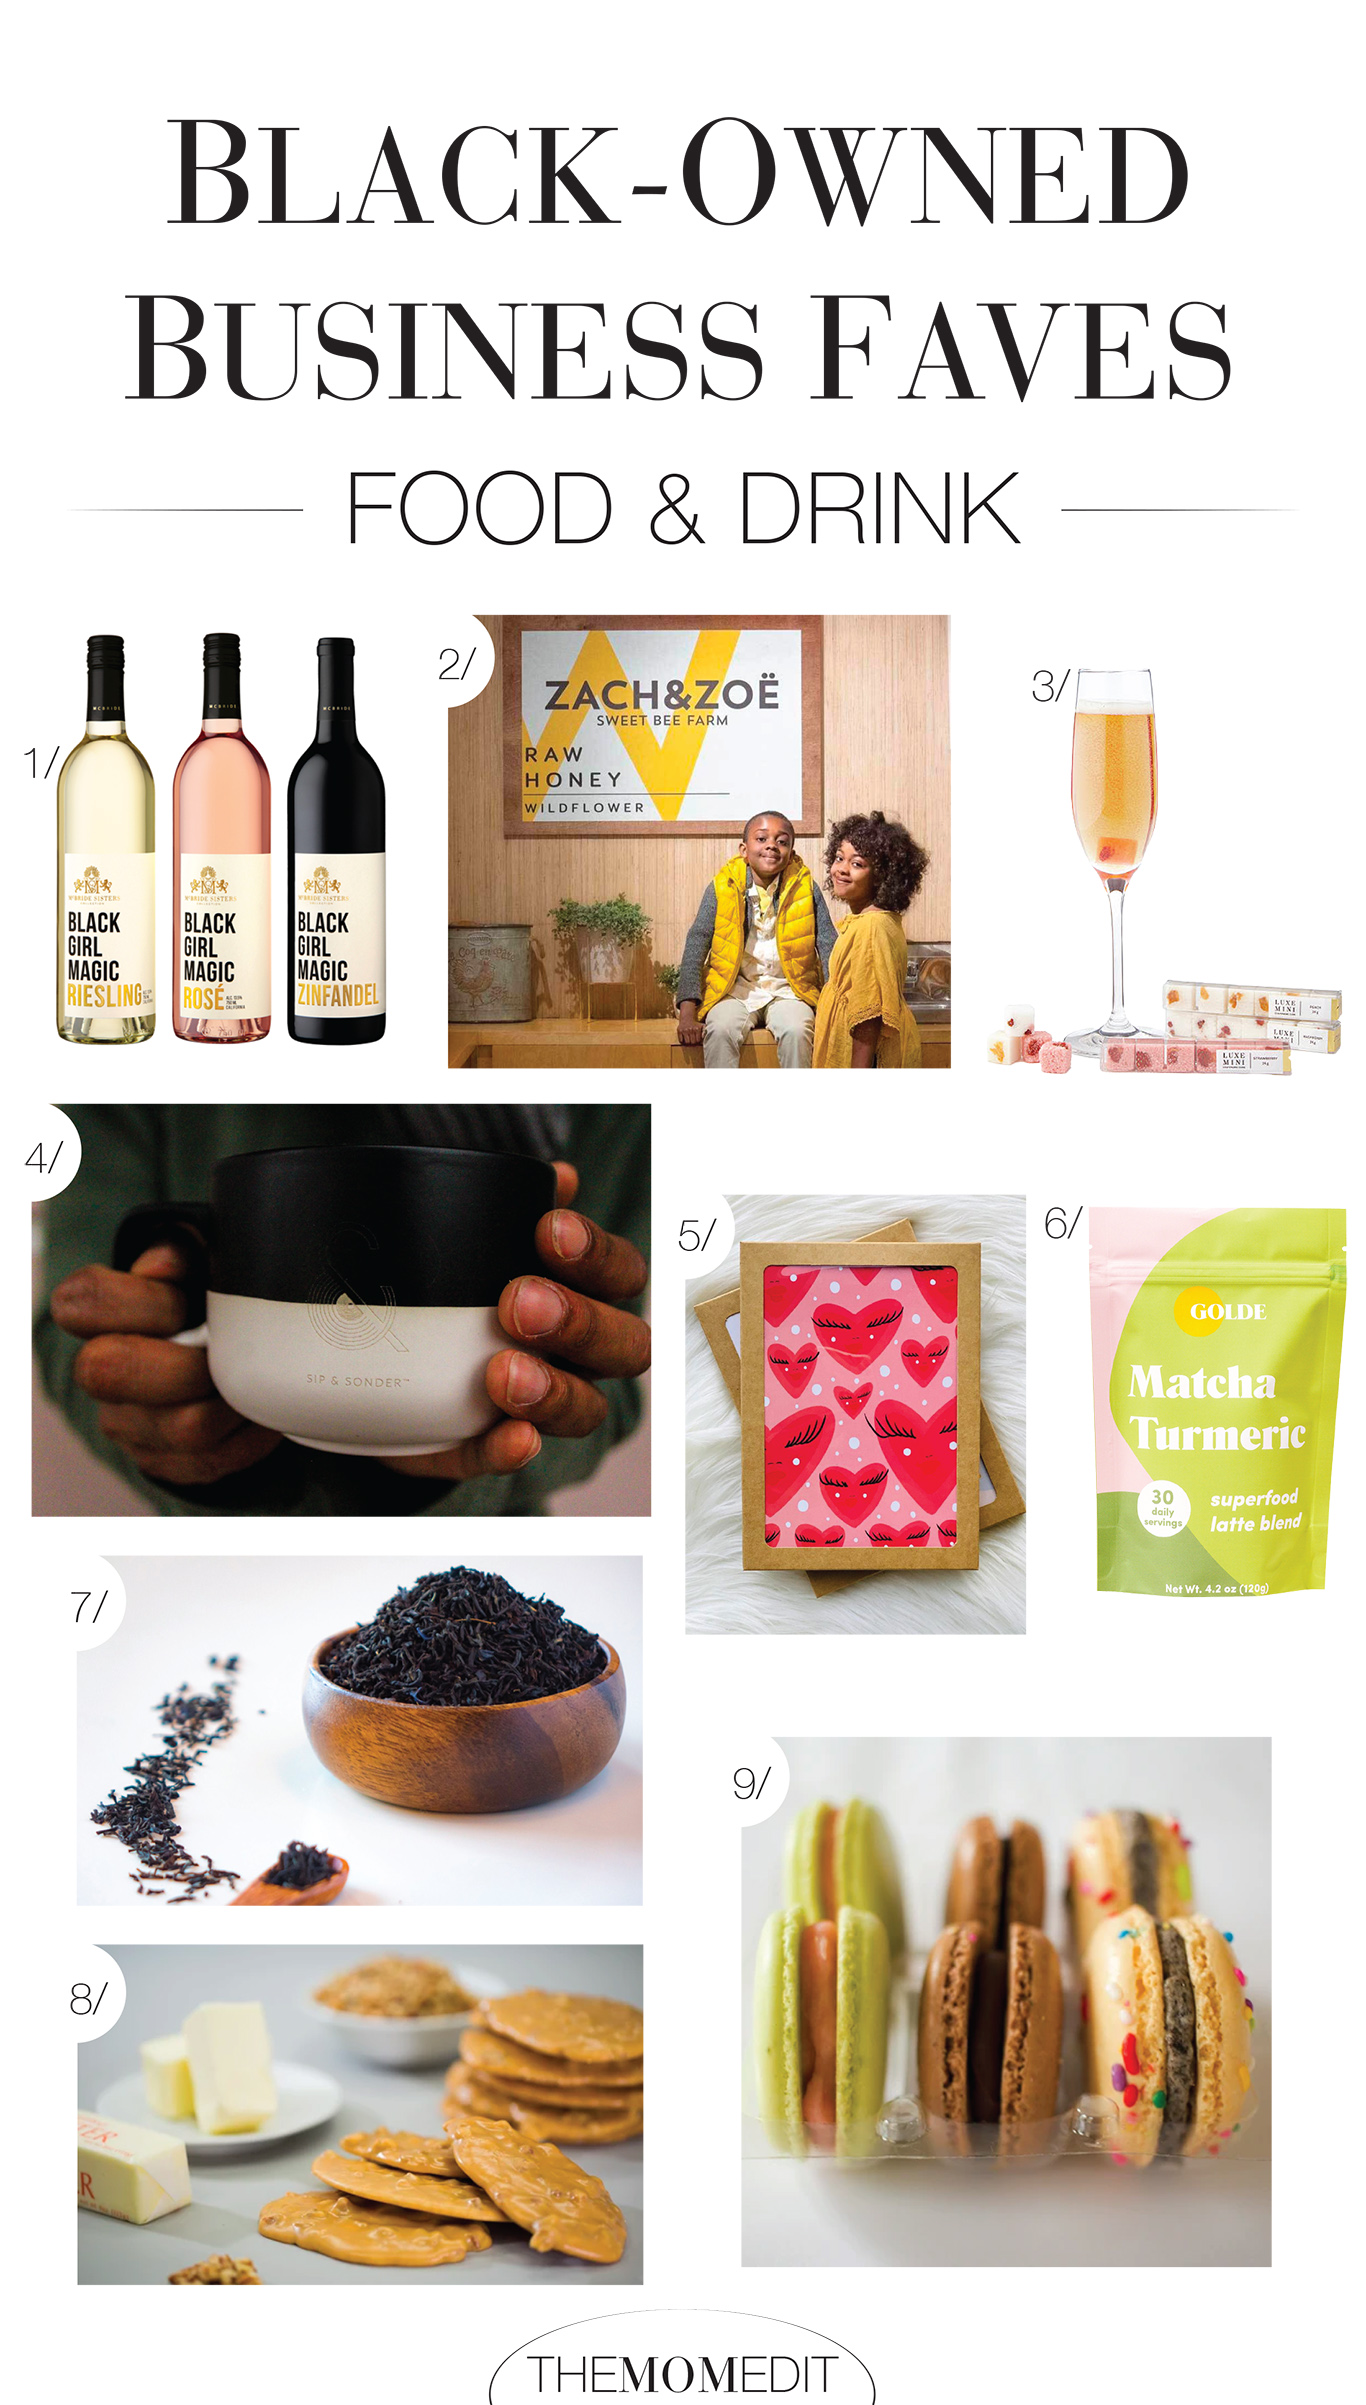 We're talking food + drink from Black-owned shops....Think mimosa sugar cubes, matcha tea, macarons, & more fun, tasty finds...a big shout out to the confections & wine...